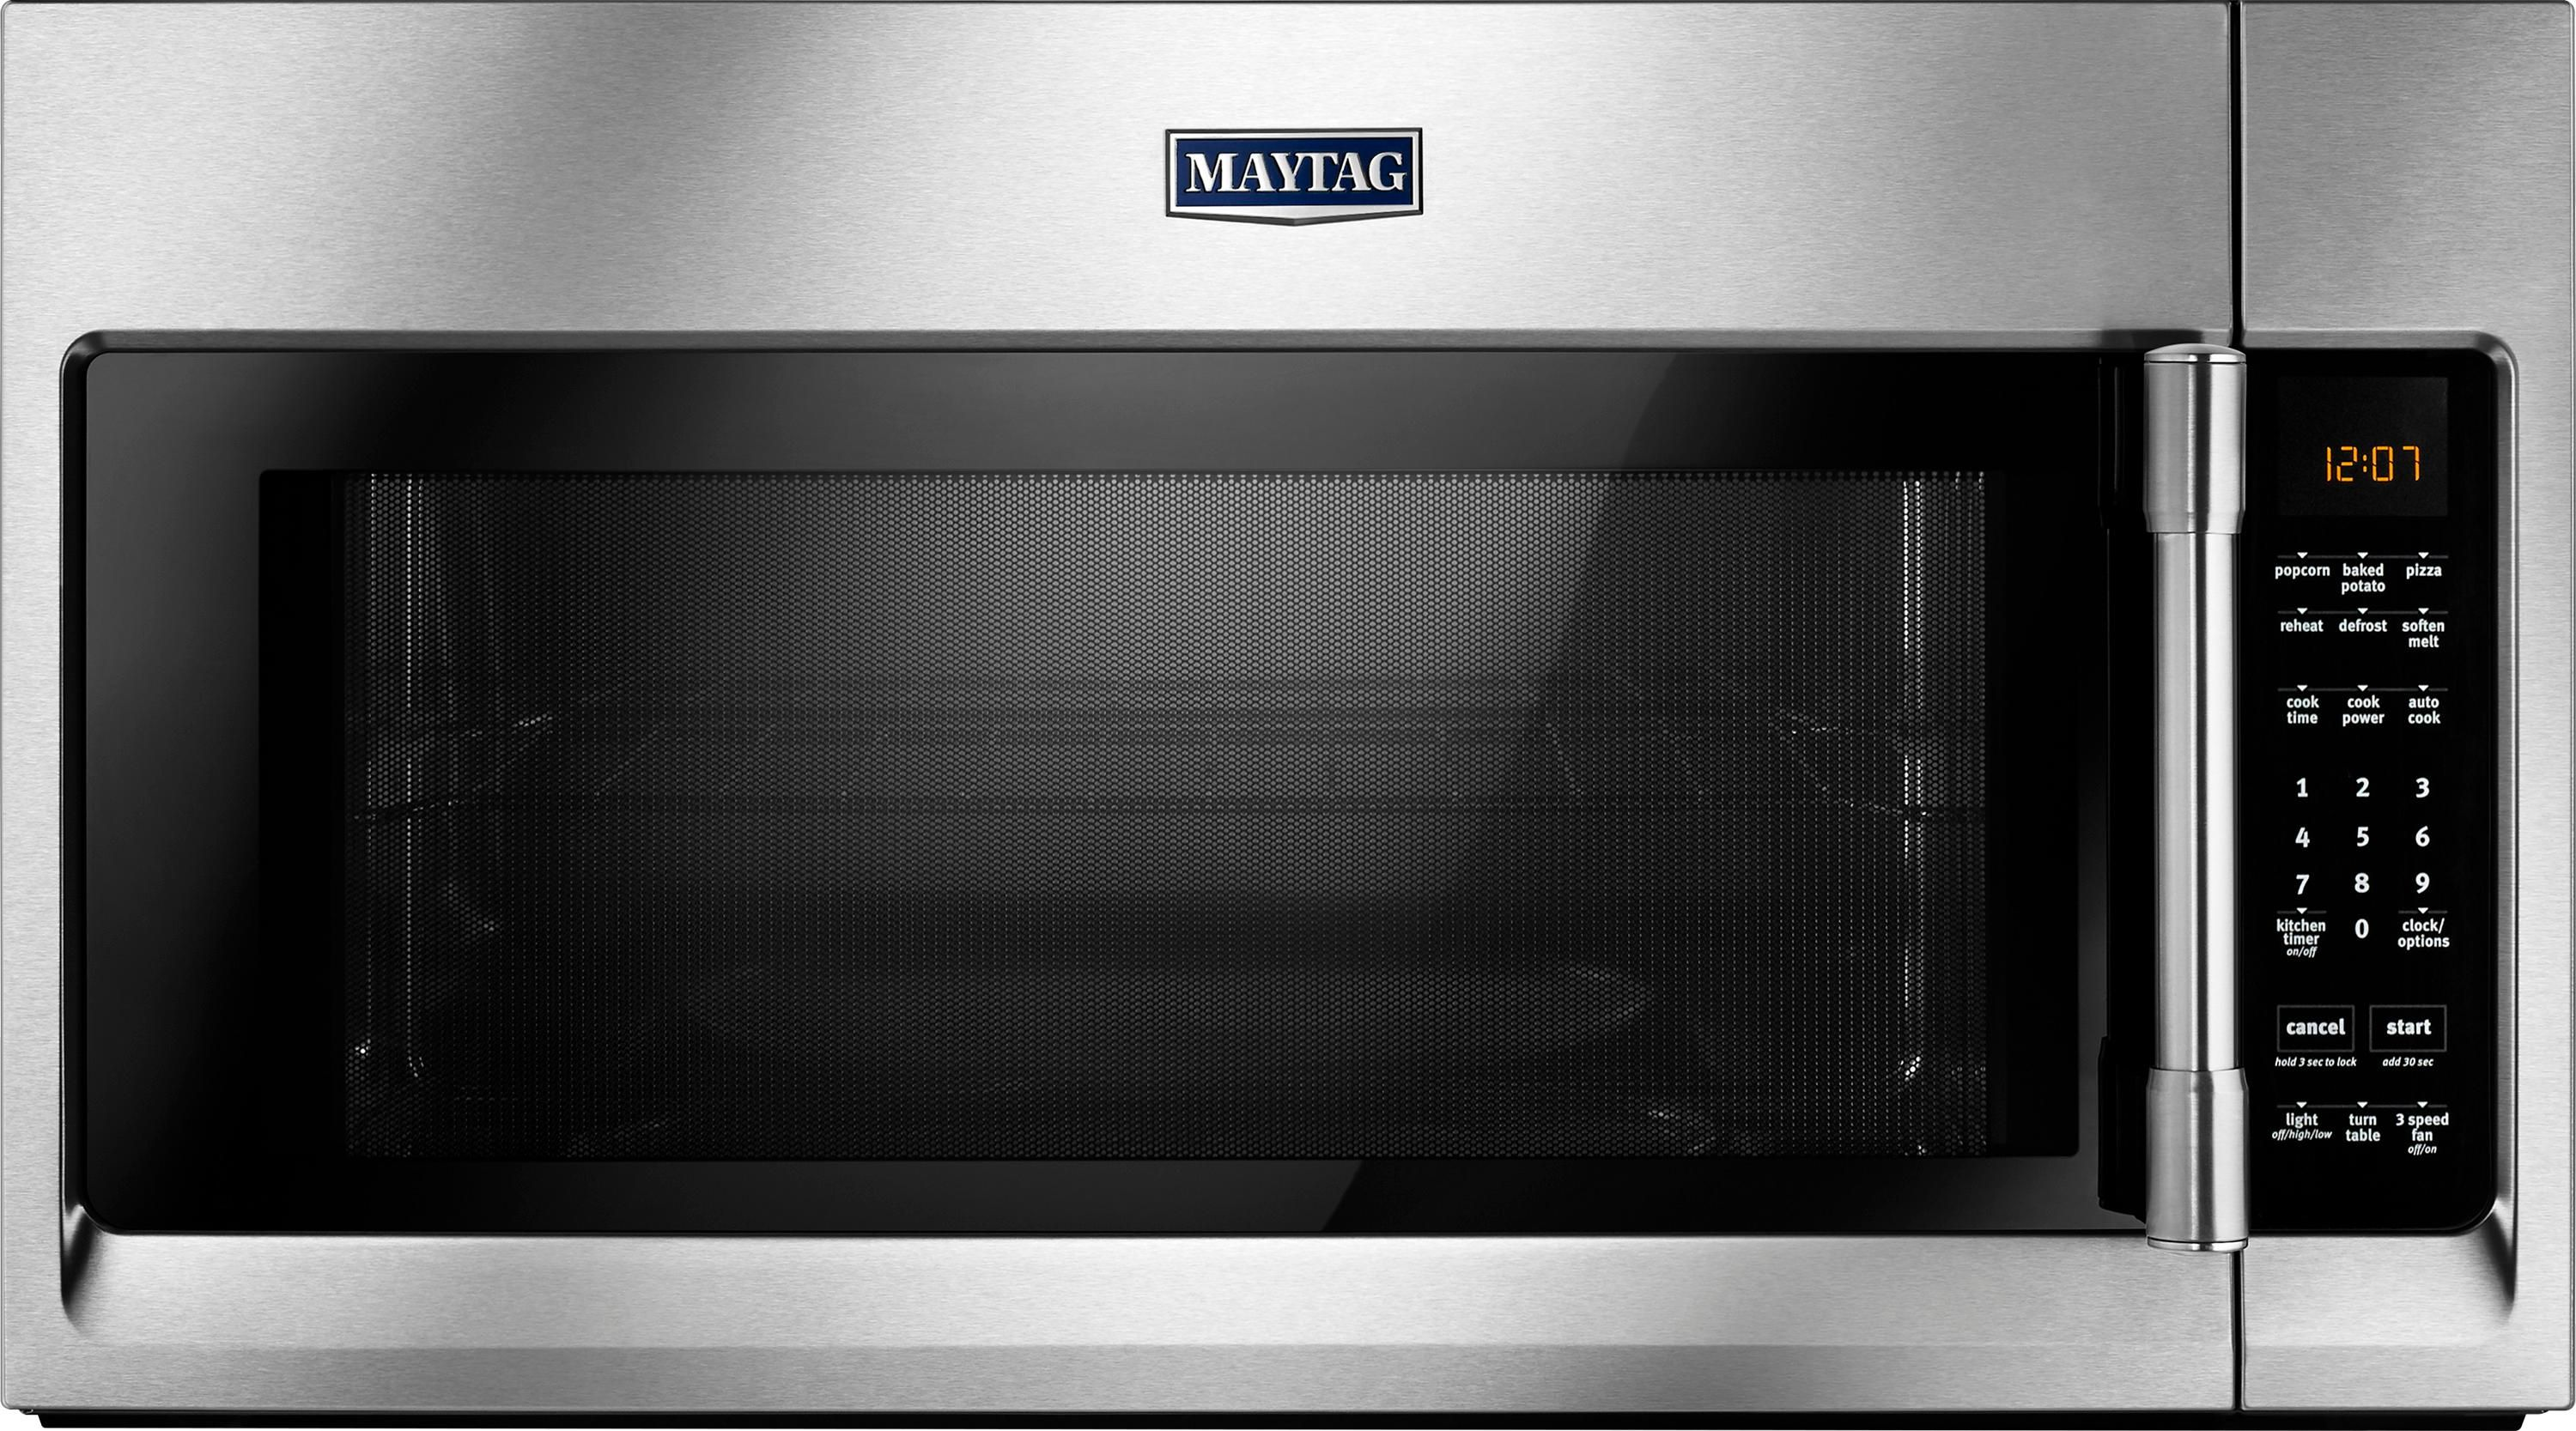 Maytag 2 0 Cu Ft Over The Range Microwave Silver Mmv4206fz